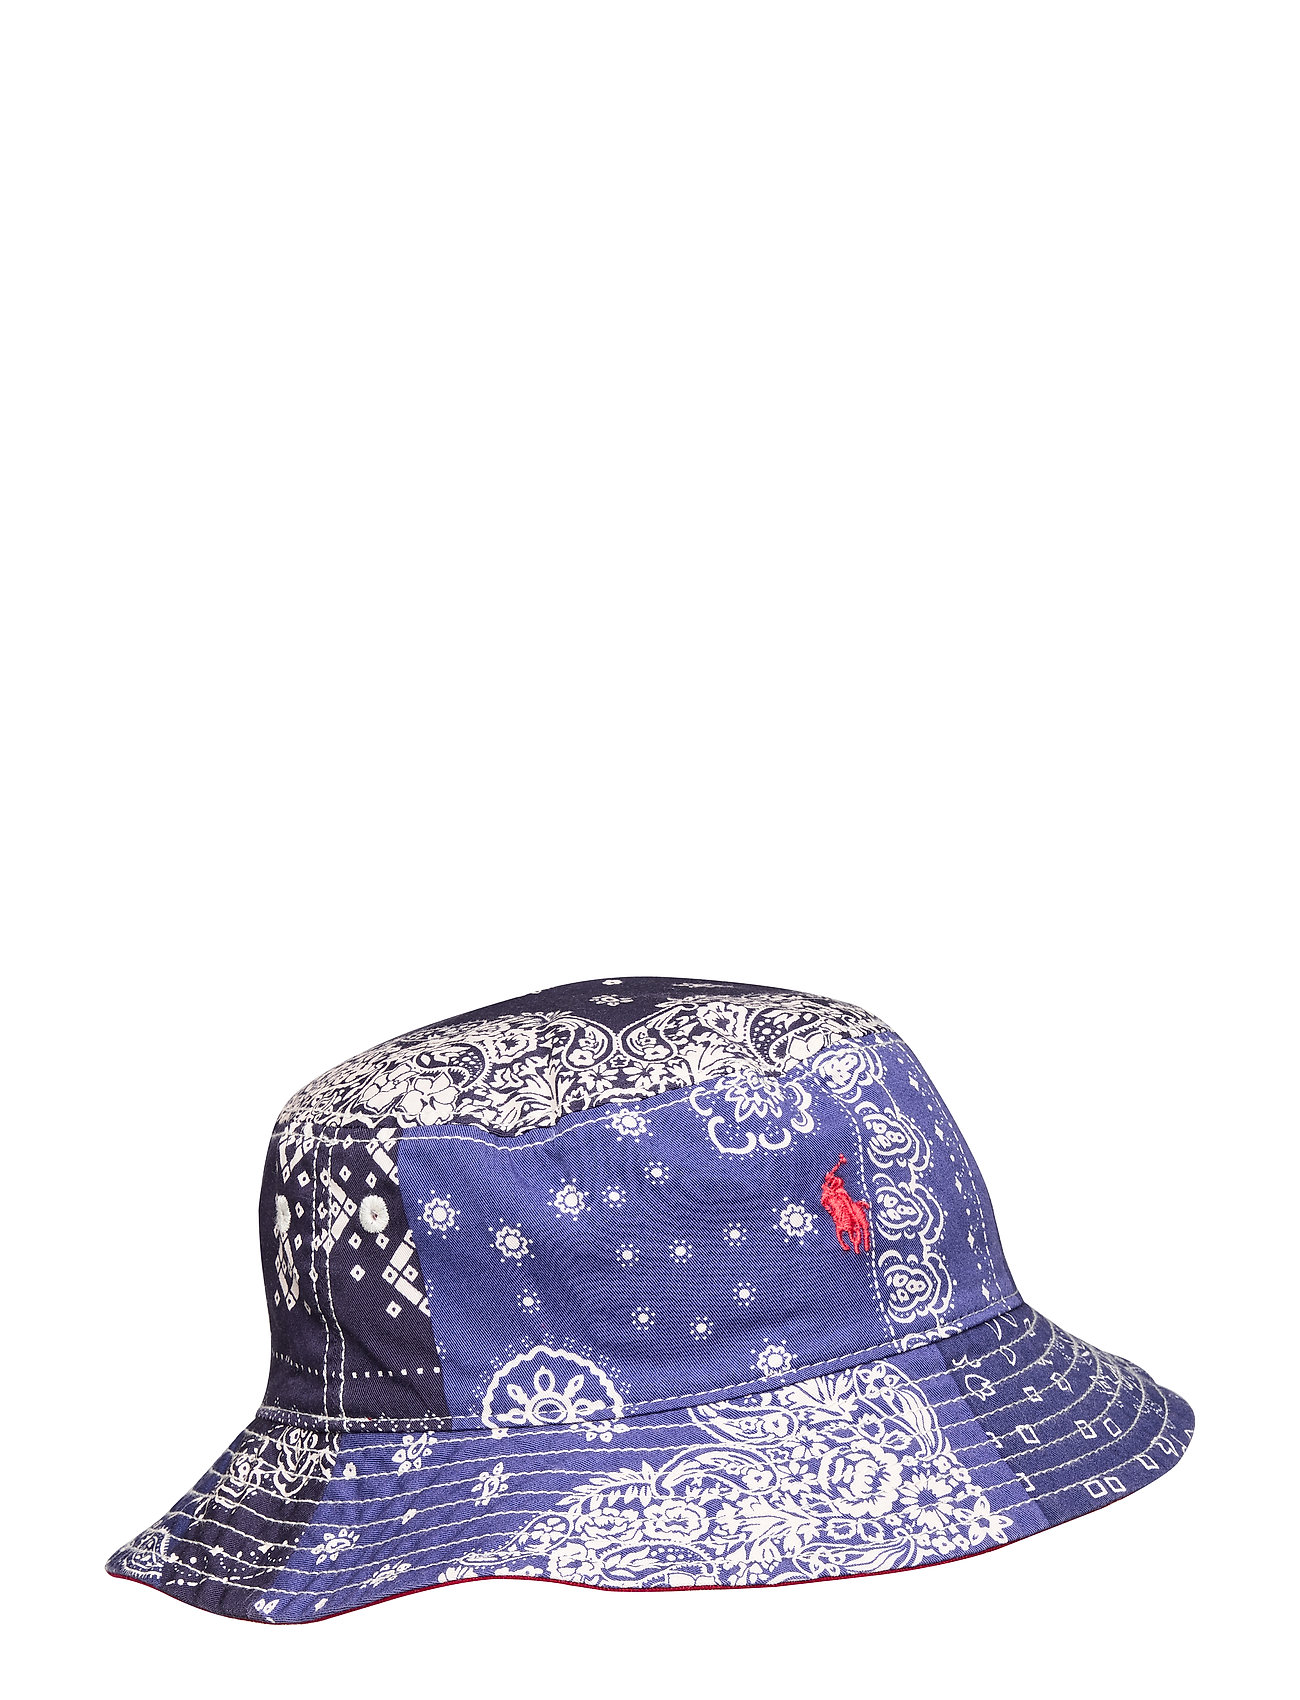 Ralph Lauren Kids Reversible Cotton Bucket Hat - BANDANA PRINT